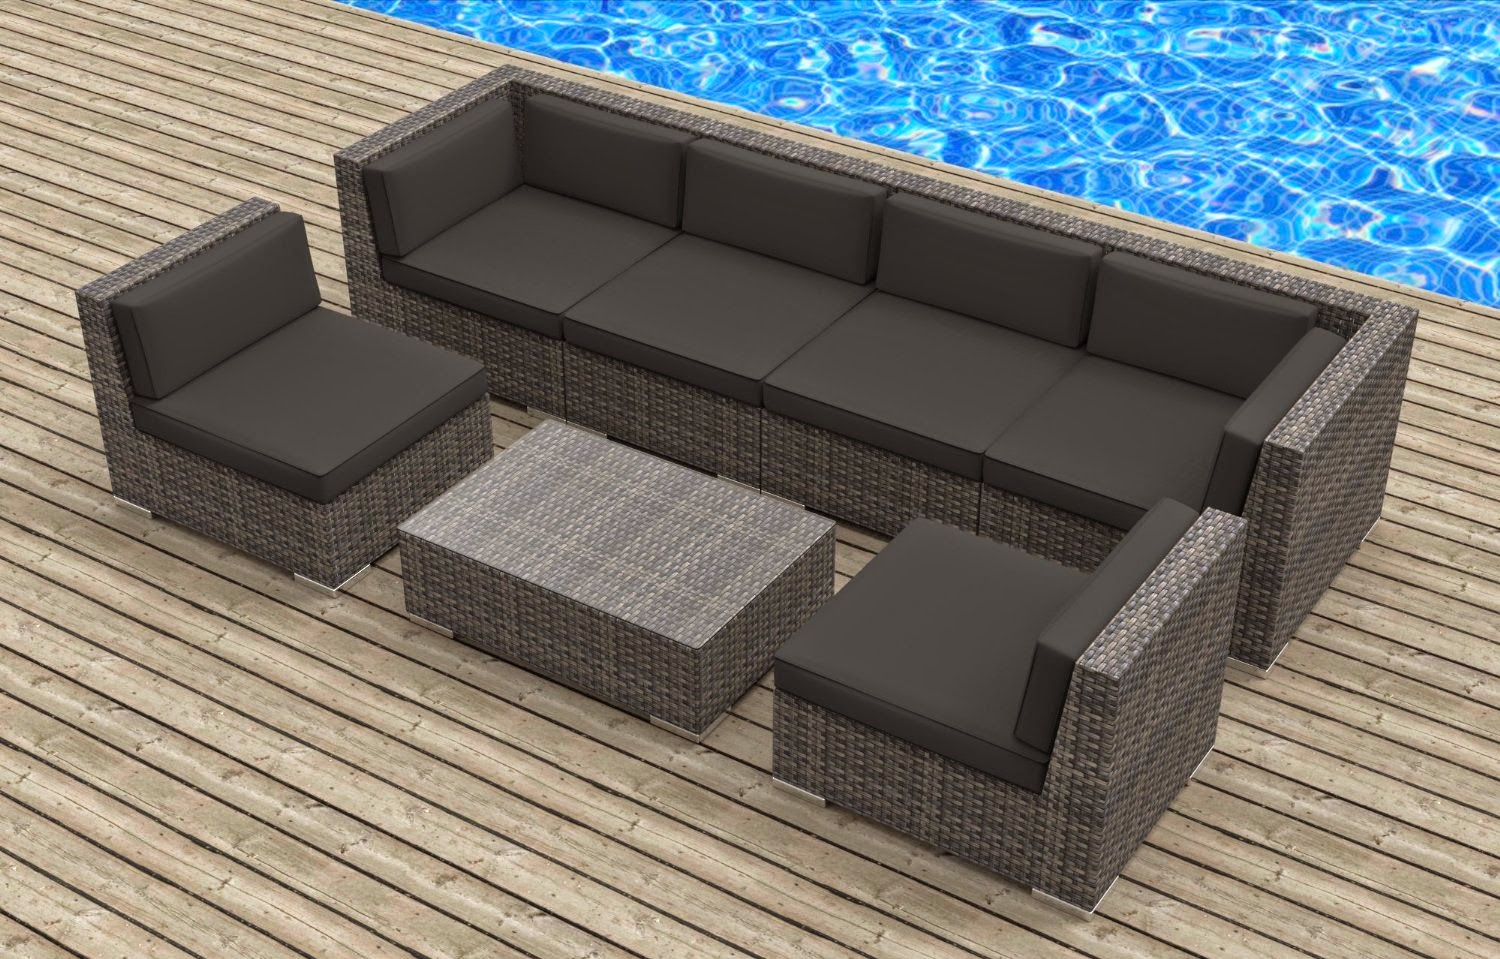 patio couch set urban furnishing modern outdoor backyard wicker rattan patio